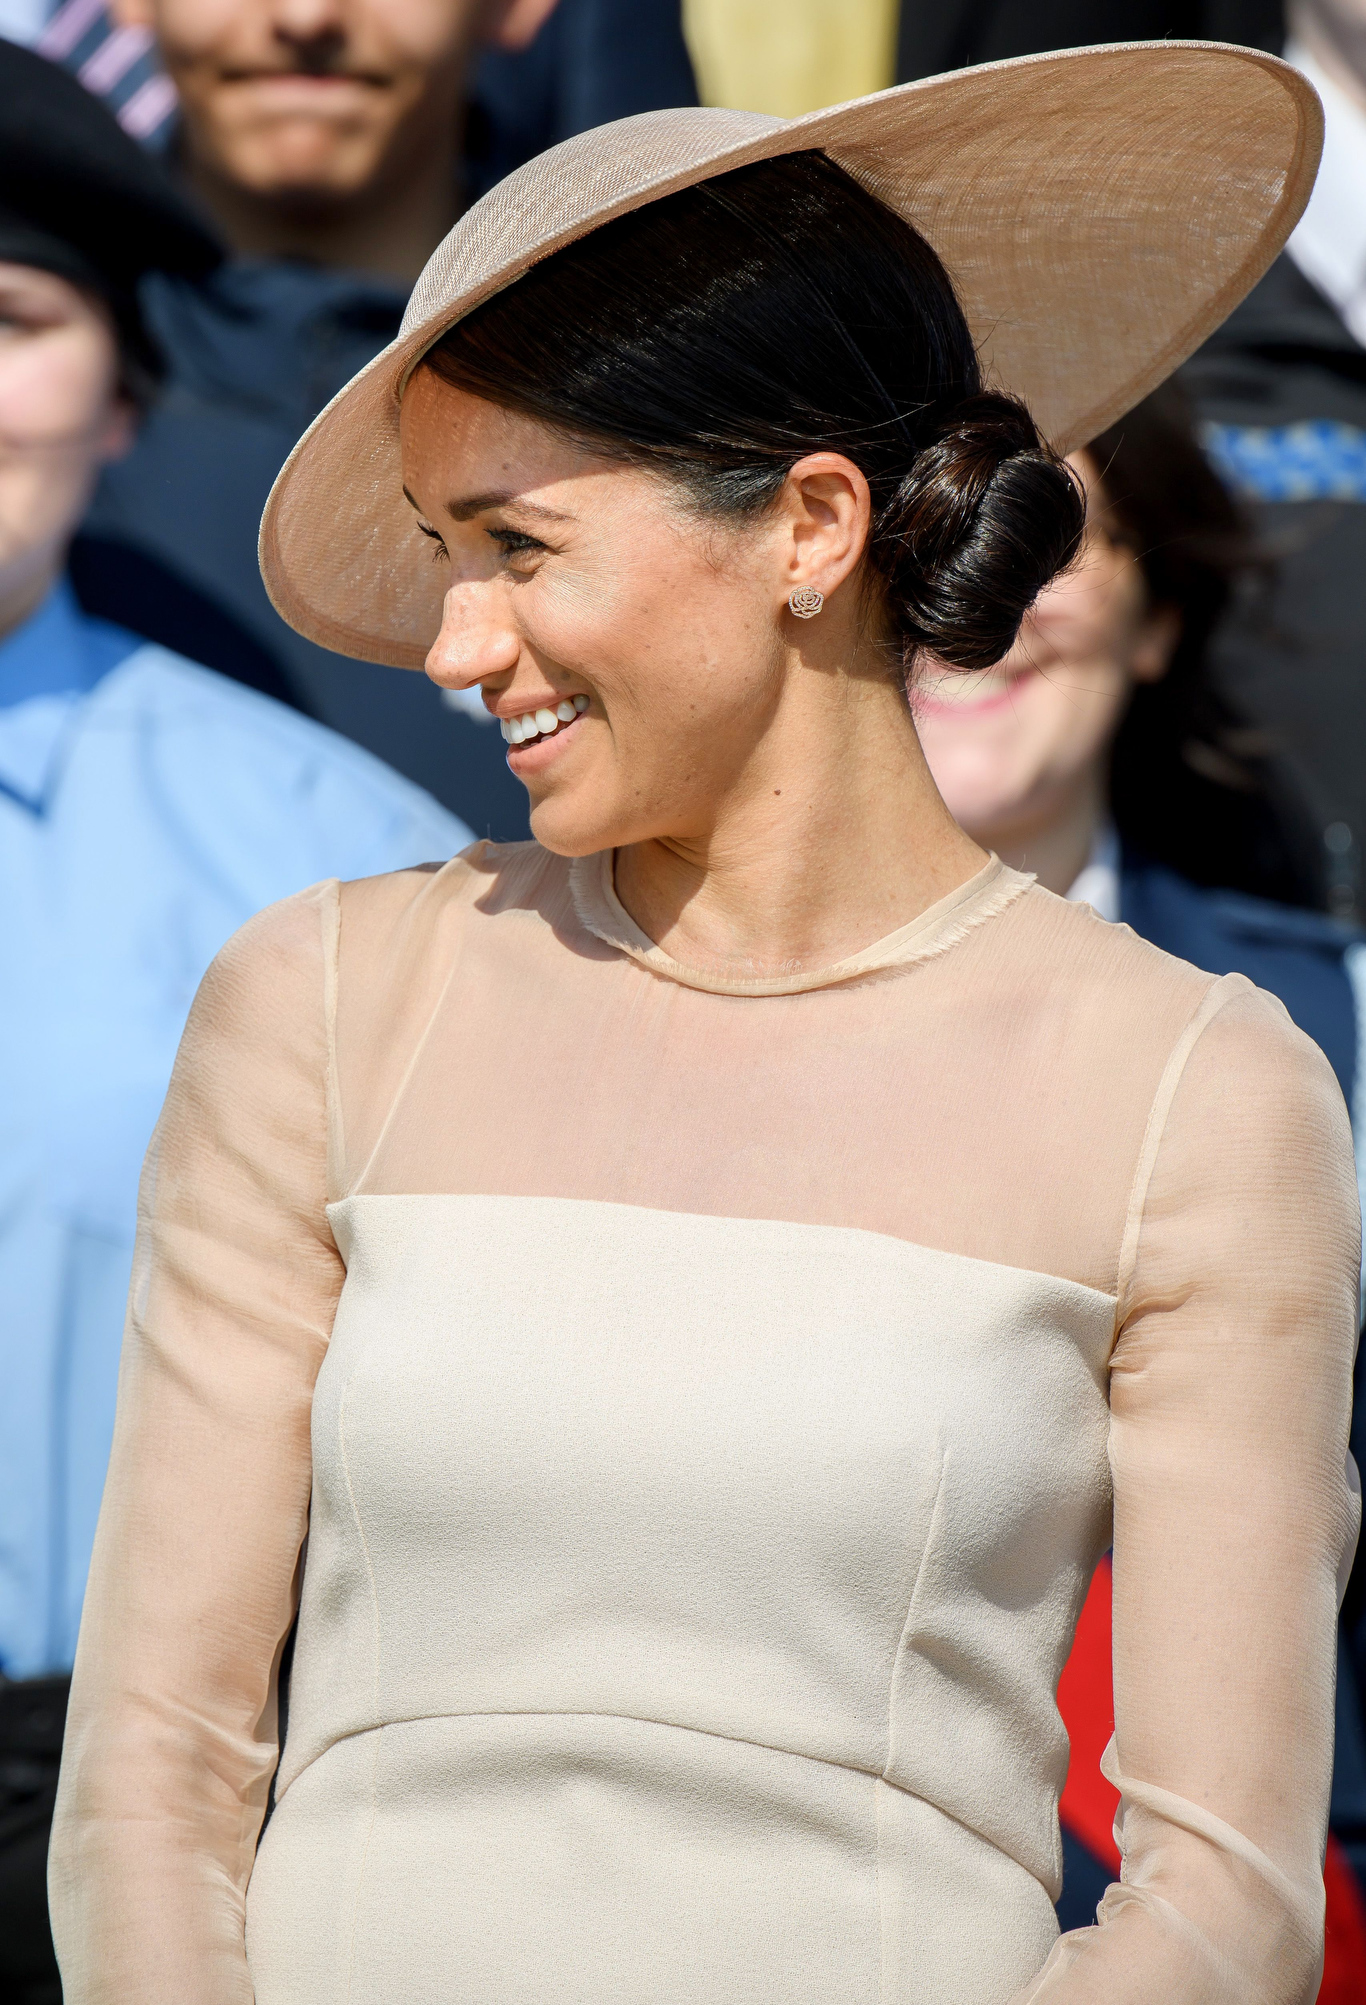 Meghan Markle at the Prince of Wales' 70th birthday patronage celebration